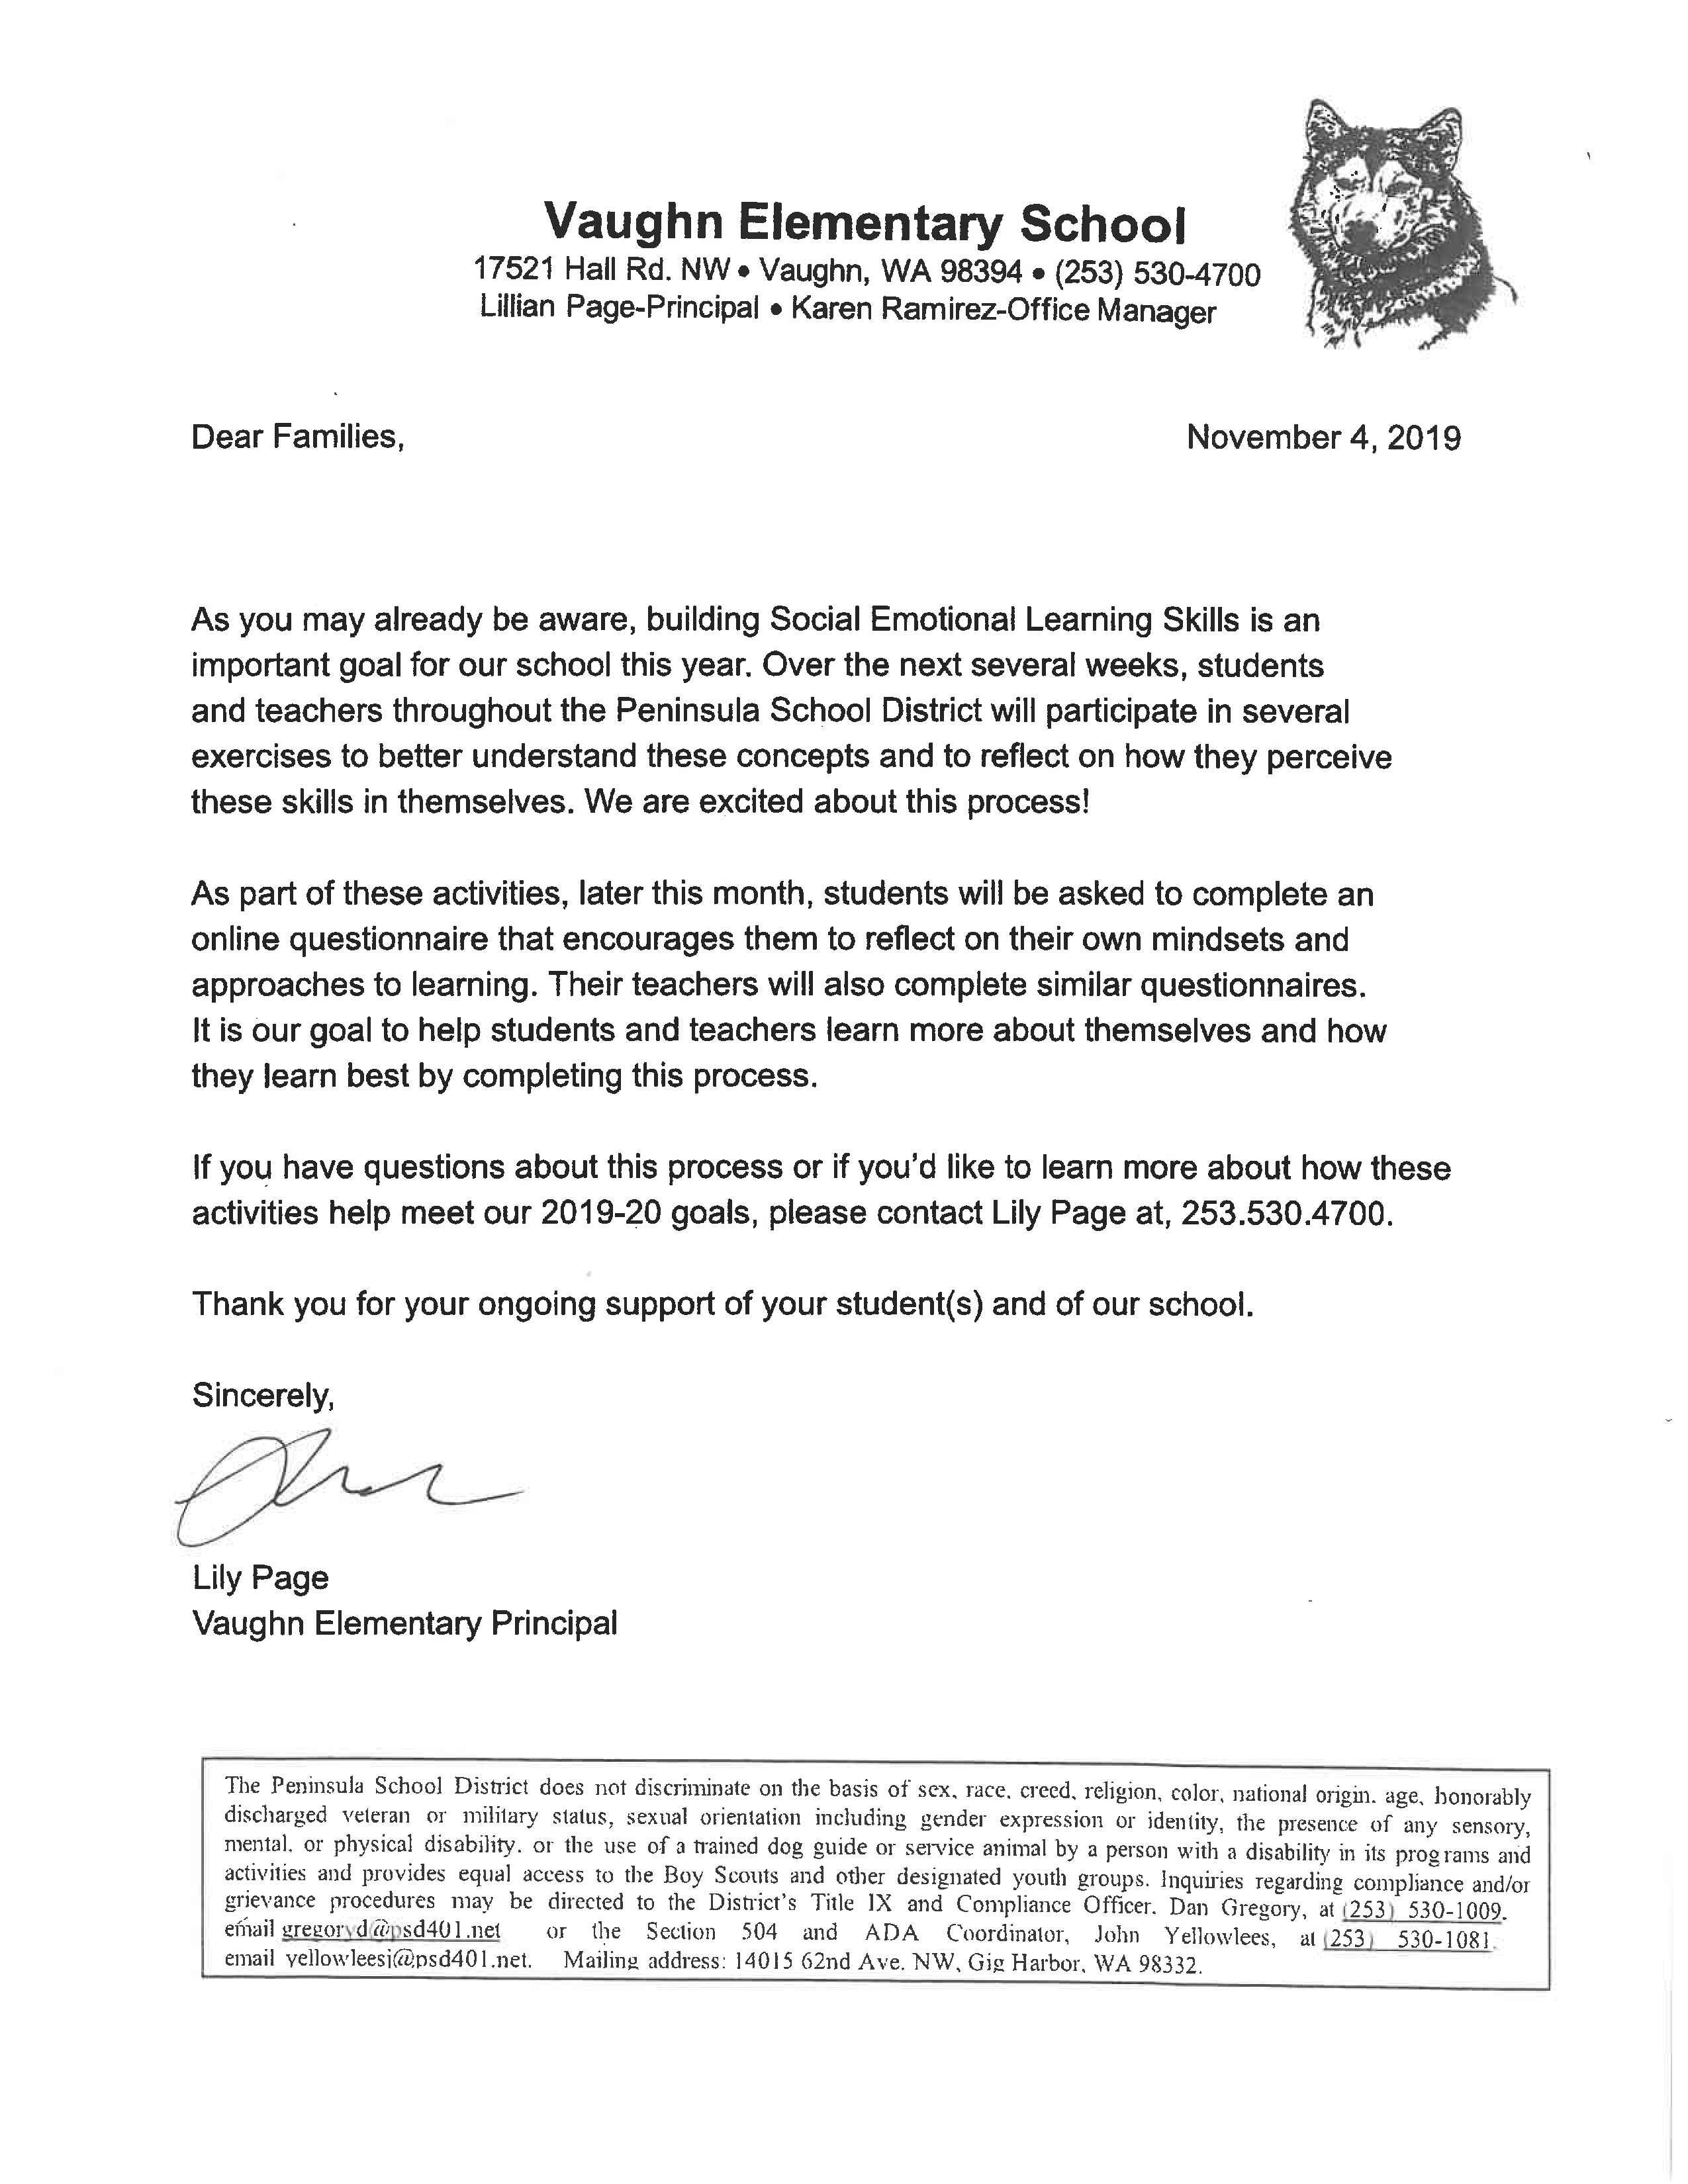 Survey Letter From Mrs. Page